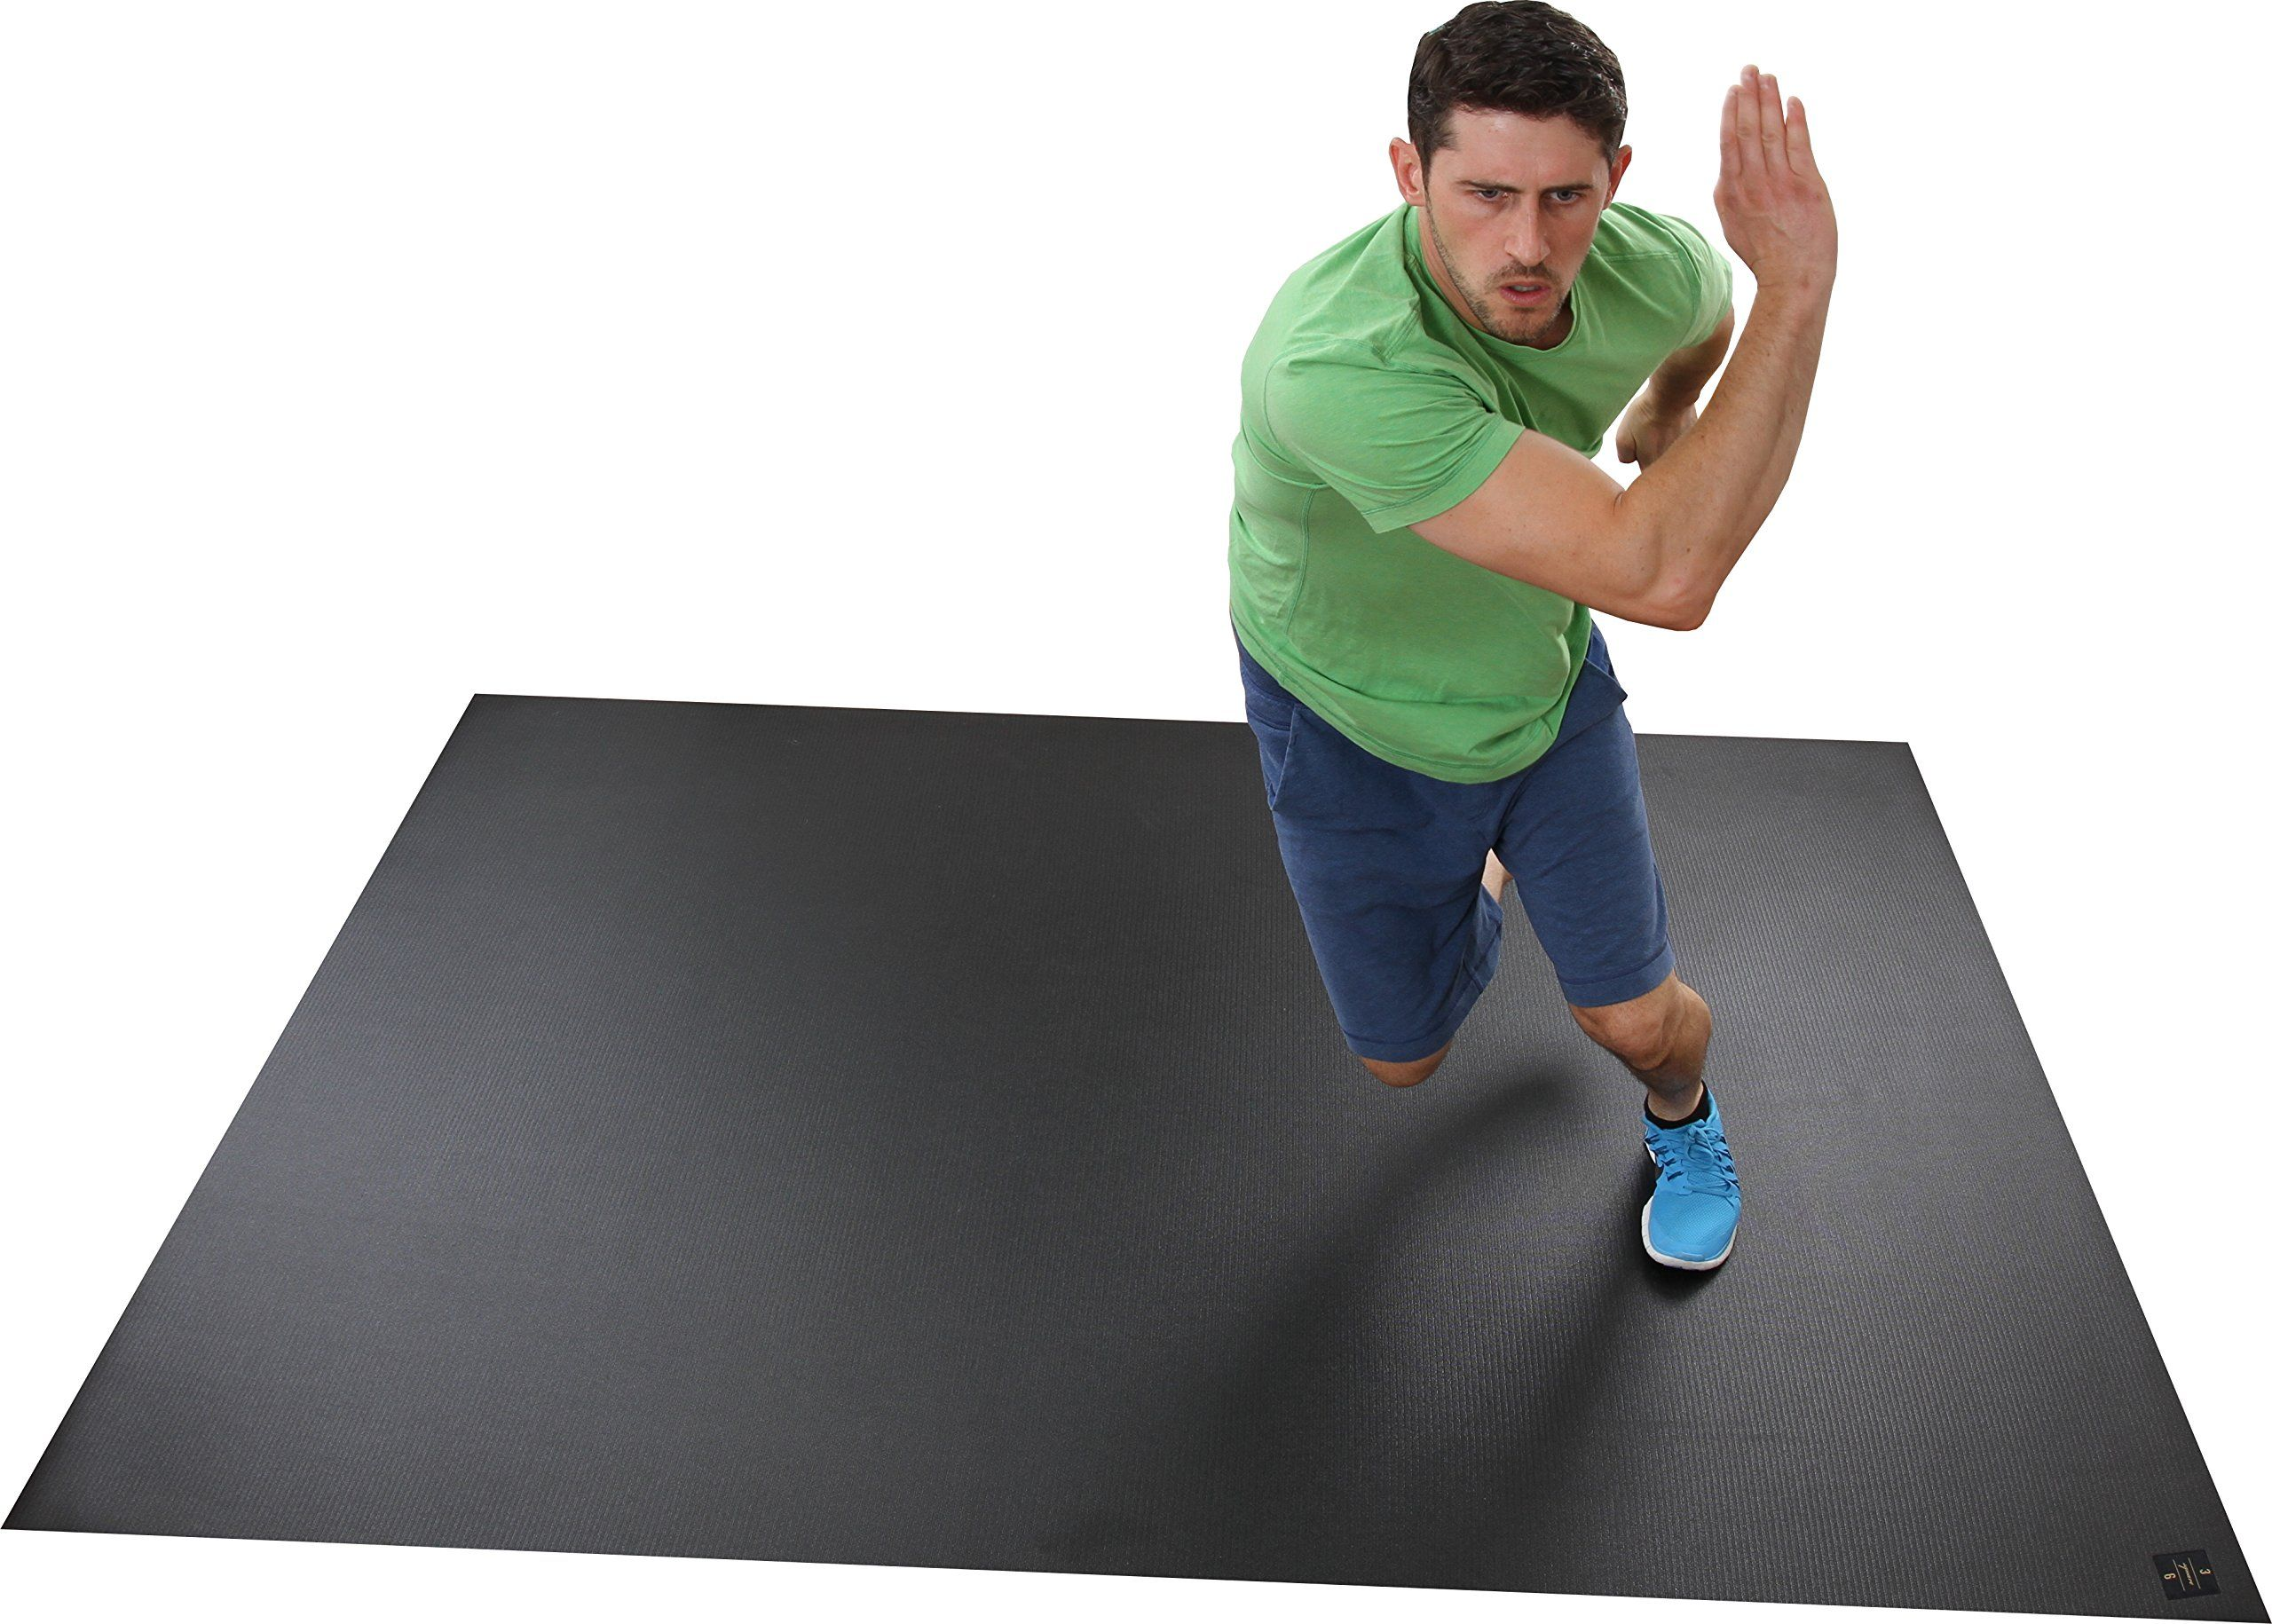 rubber workout mats flooring plyorobic products elkhart gym photo plyometric in inch